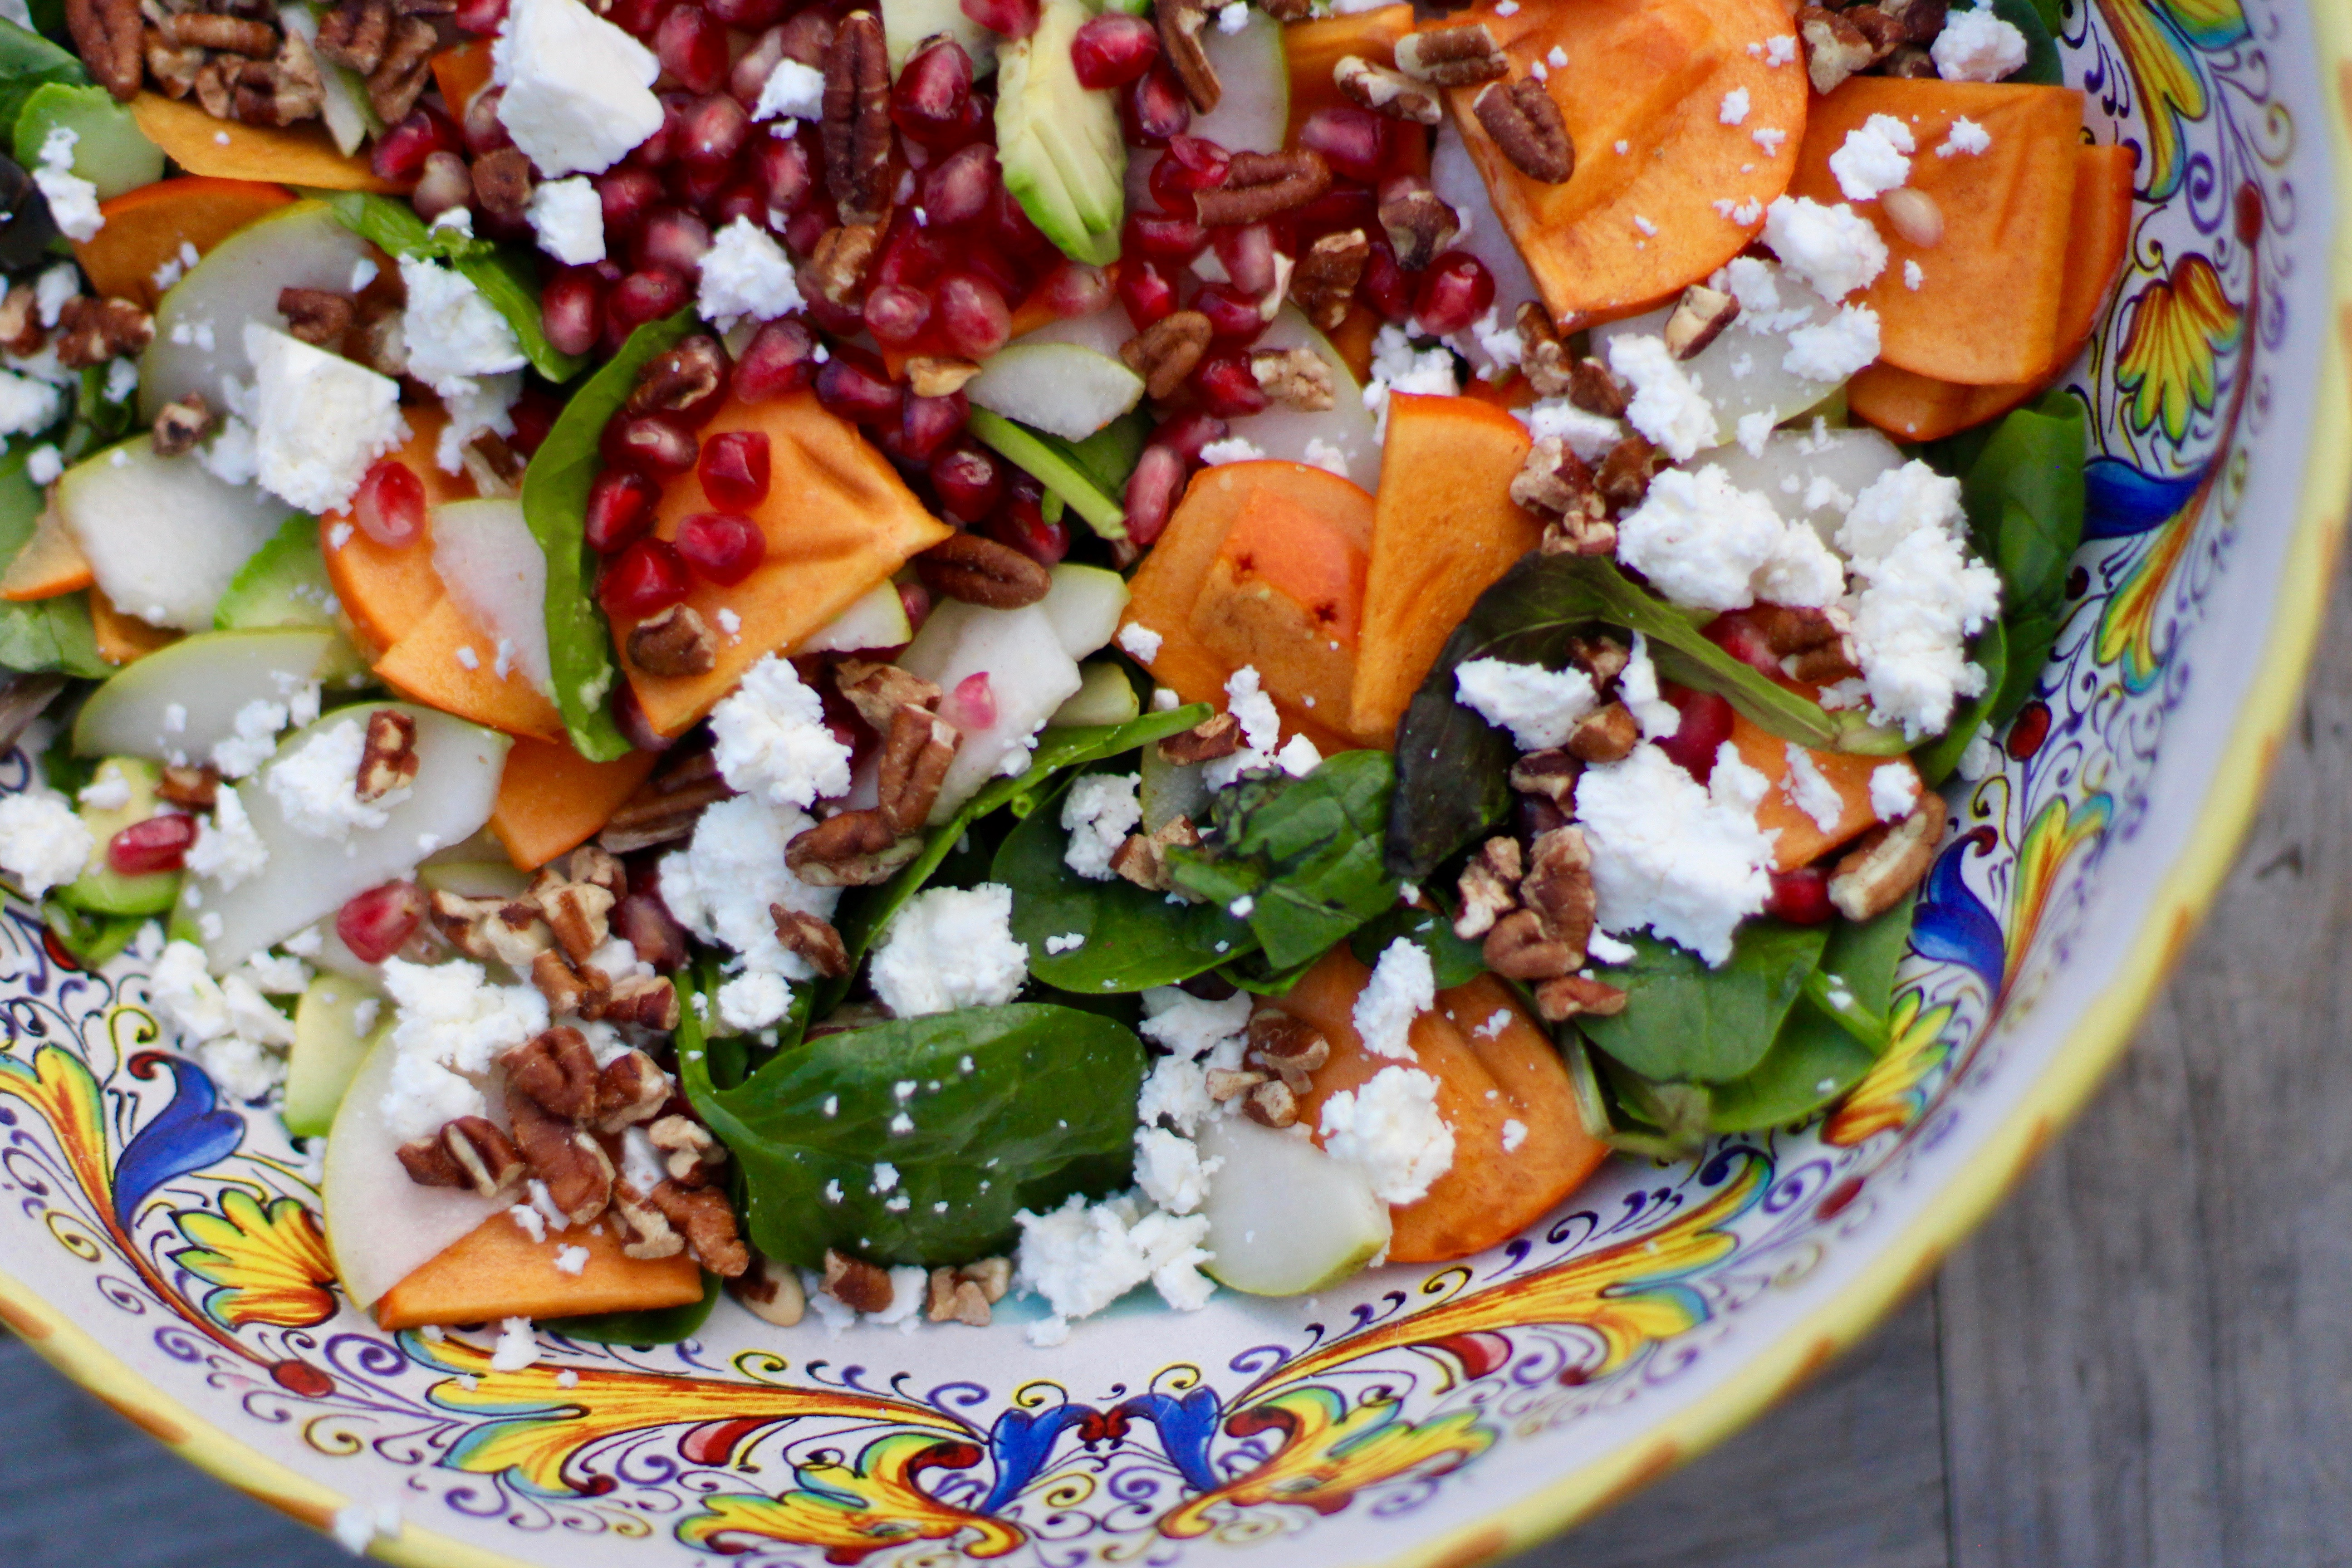 Persimmon, Pear and Pomegranate Salad